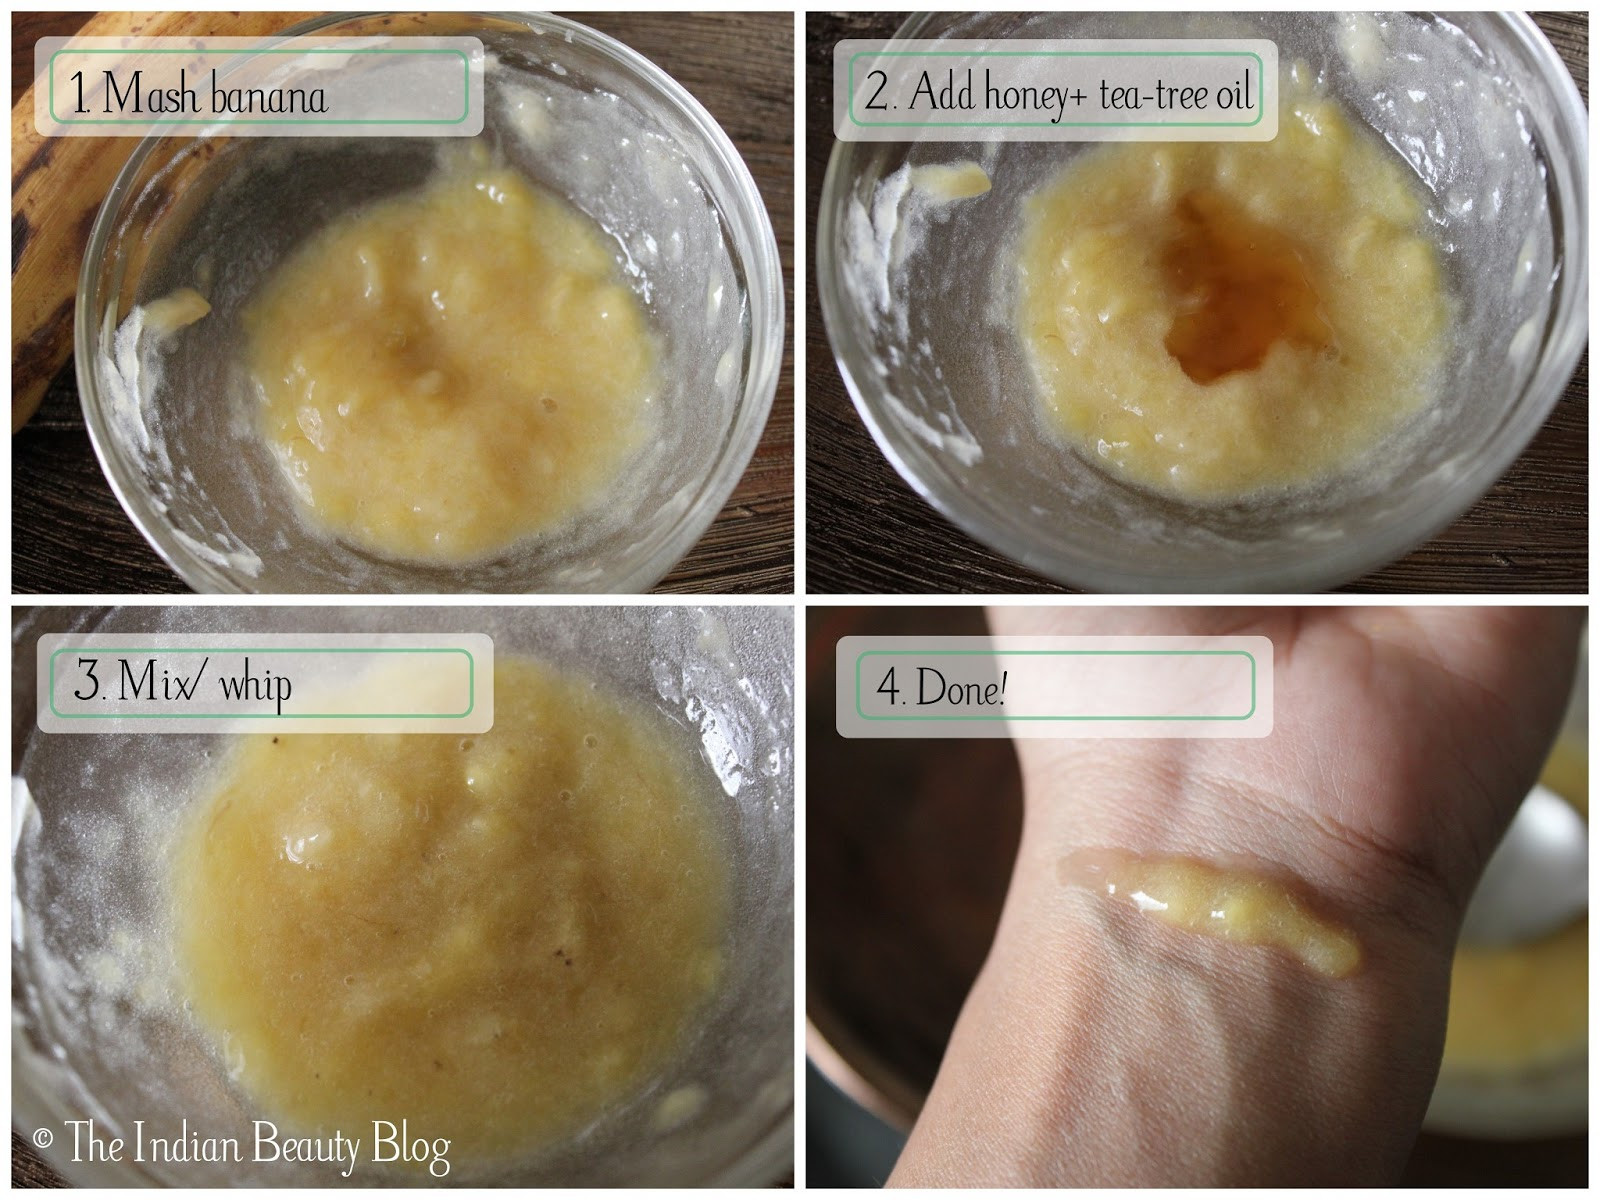 Best ideas about Acne Mask DIY . Save or Pin Acne Clearing Face Mask Diy Diy Do It Your Self Now.